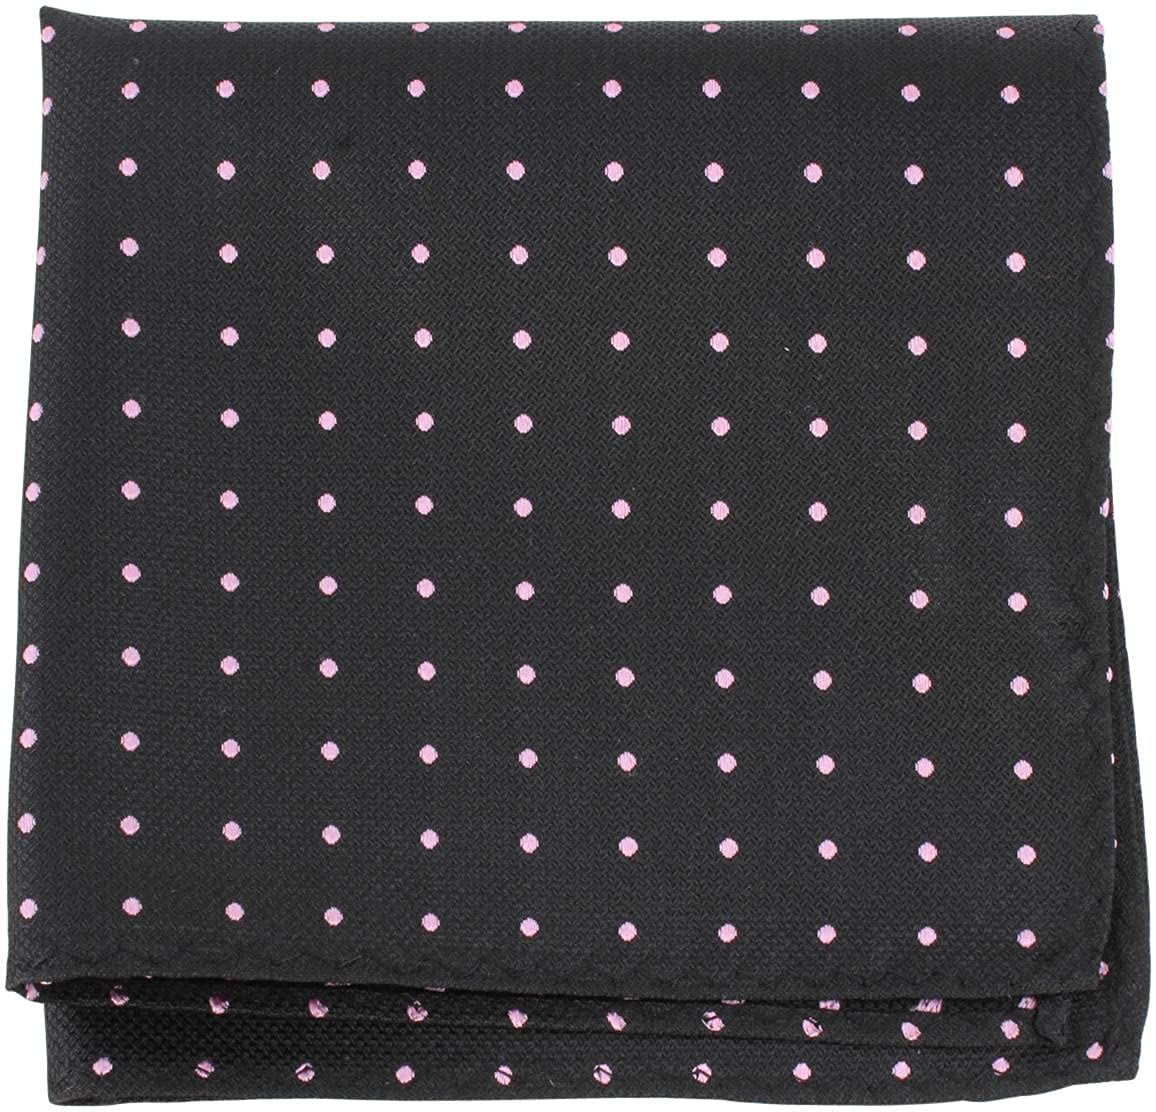 Knightsbridge Neckwear Mens Pin Dot Silk Pocket Square Black//Pink